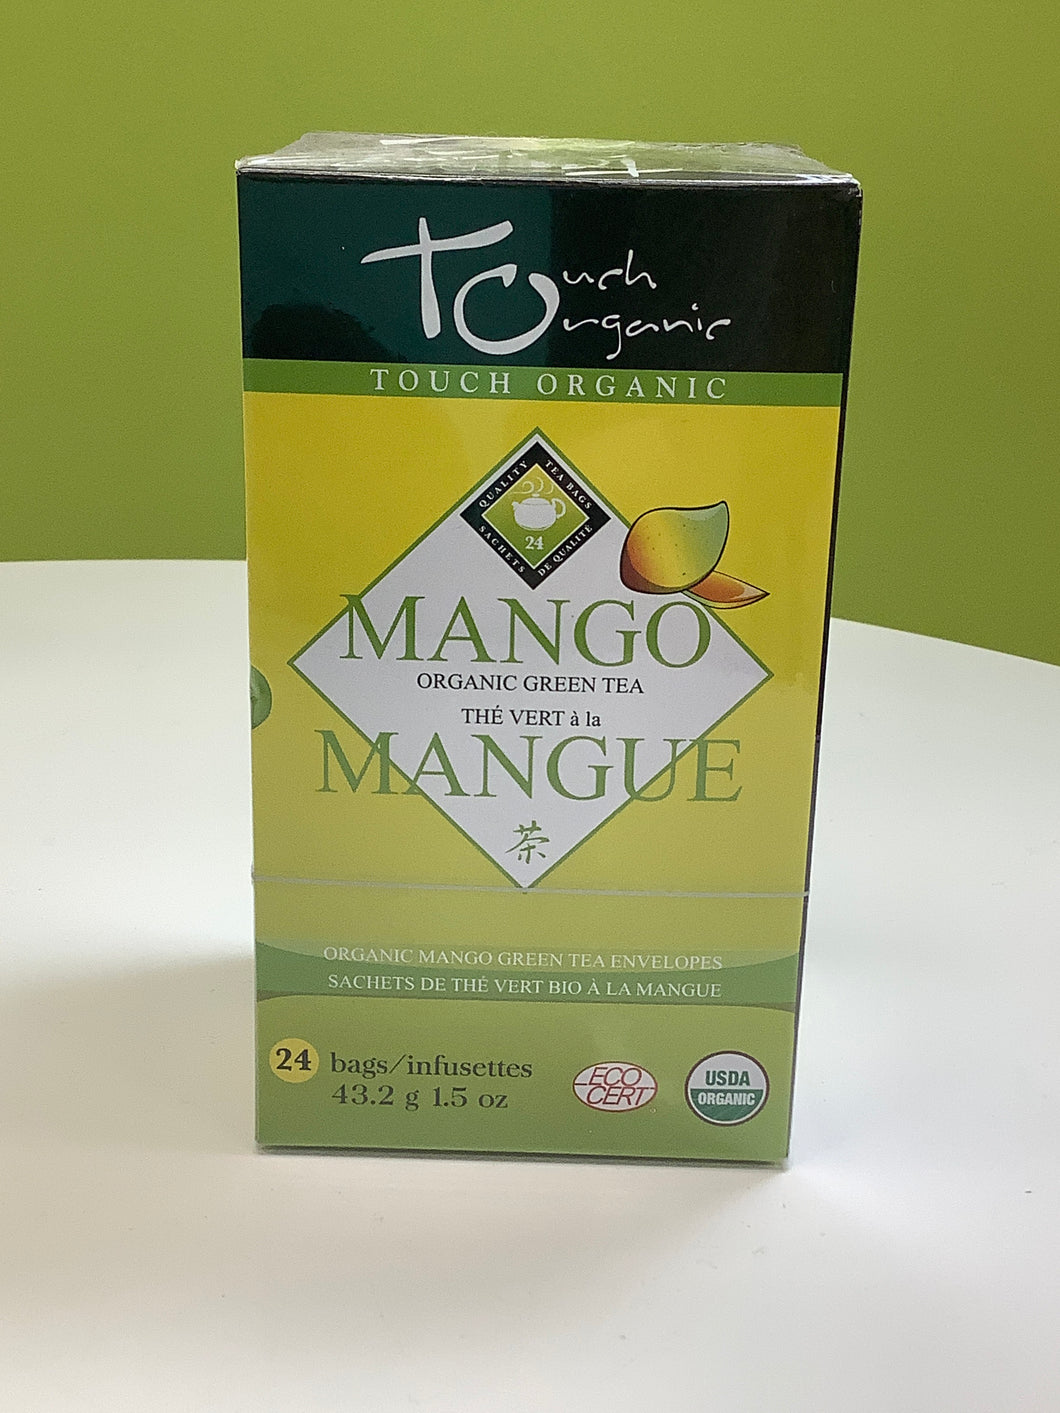 Touch Organic Mango Organic Green Tea